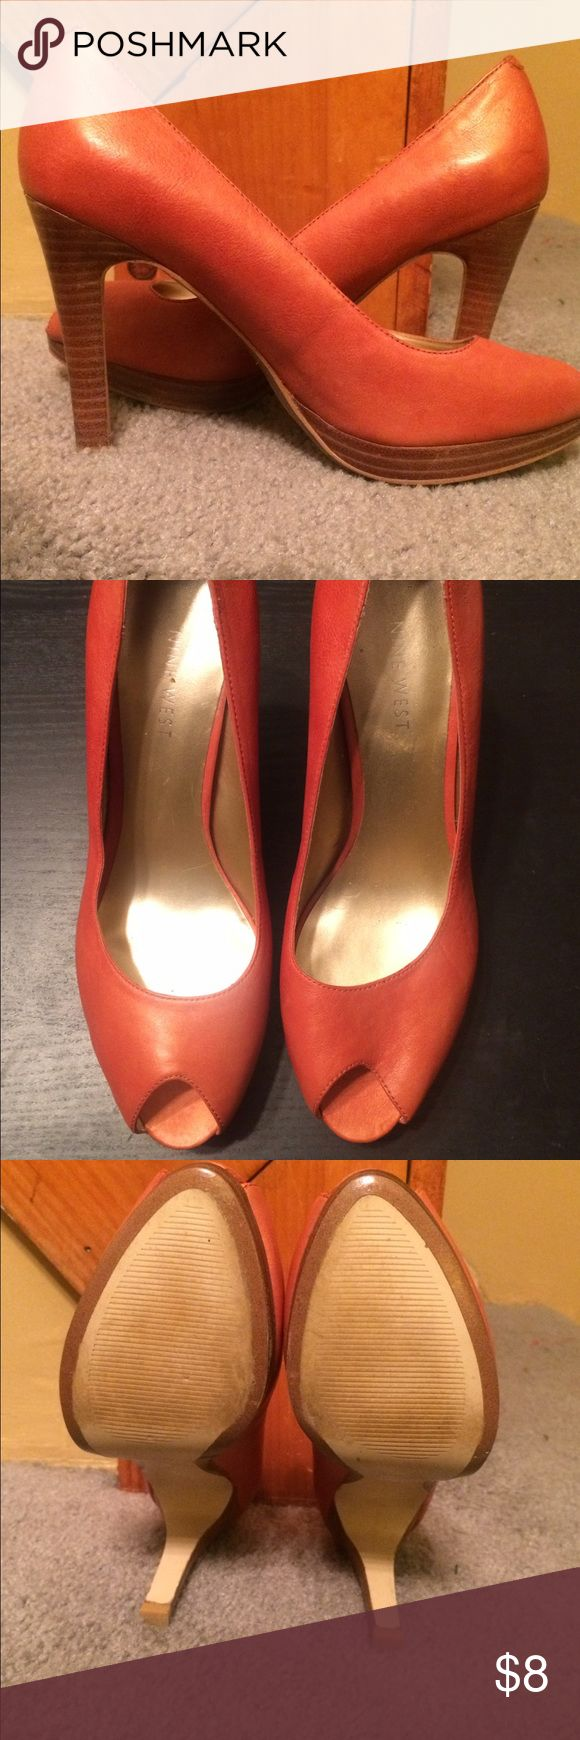 Nine West Orange leather peep toe heels 🍊 Coral orange with a golden shimmer. 4 1/2 inch heels and soft leather. Lightly worn and in great shape. Nine West Shoes Heels